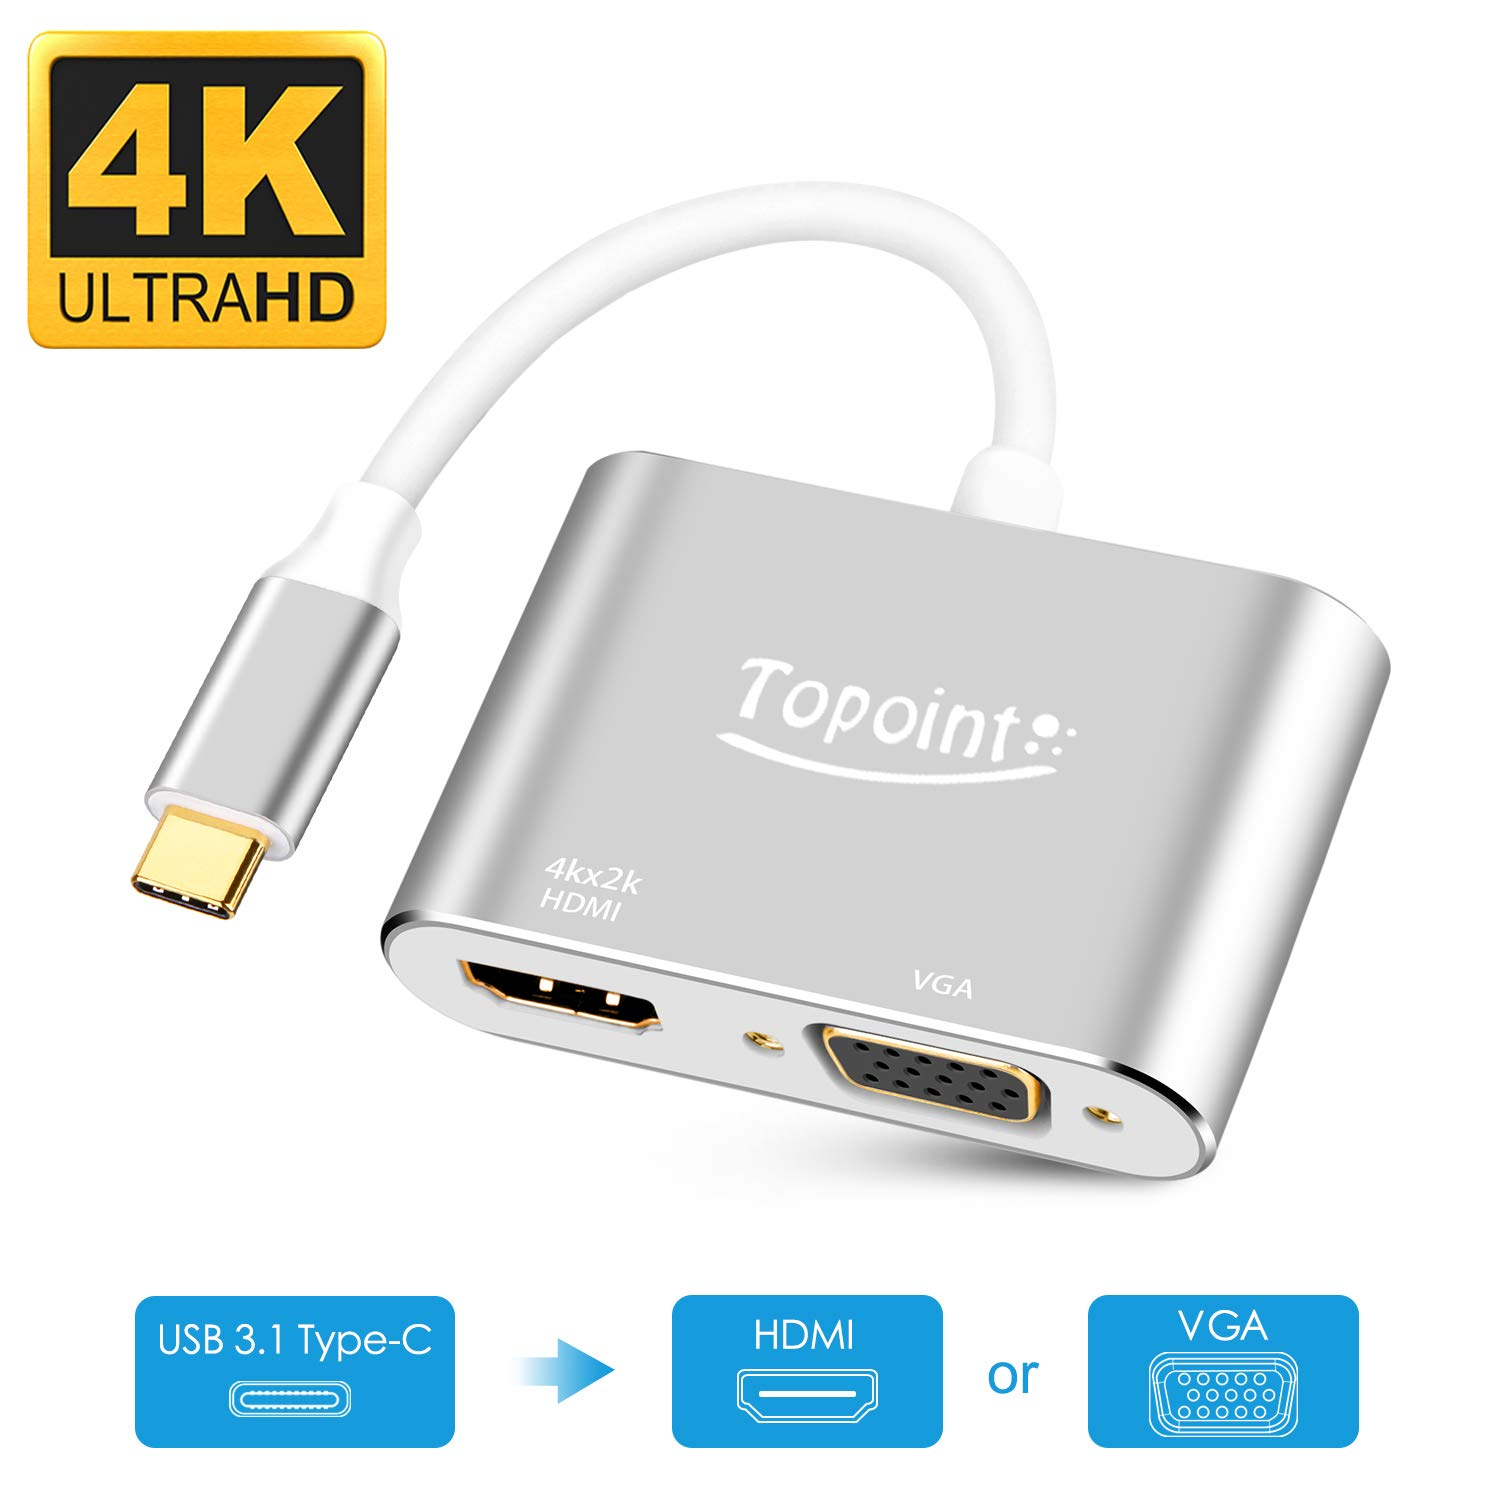 Roll over image to zoom in USB C to HDMI VGA Adapter, WU-MINGLU USB 3.1 Type C to VGA HDMI UHD Video Converter Adapter for 2018 iPad Pro/MacBook Pro/Chromebook Pixel/Samsung Galaxy S8 S9/Dell XPS/Lenovo 900/